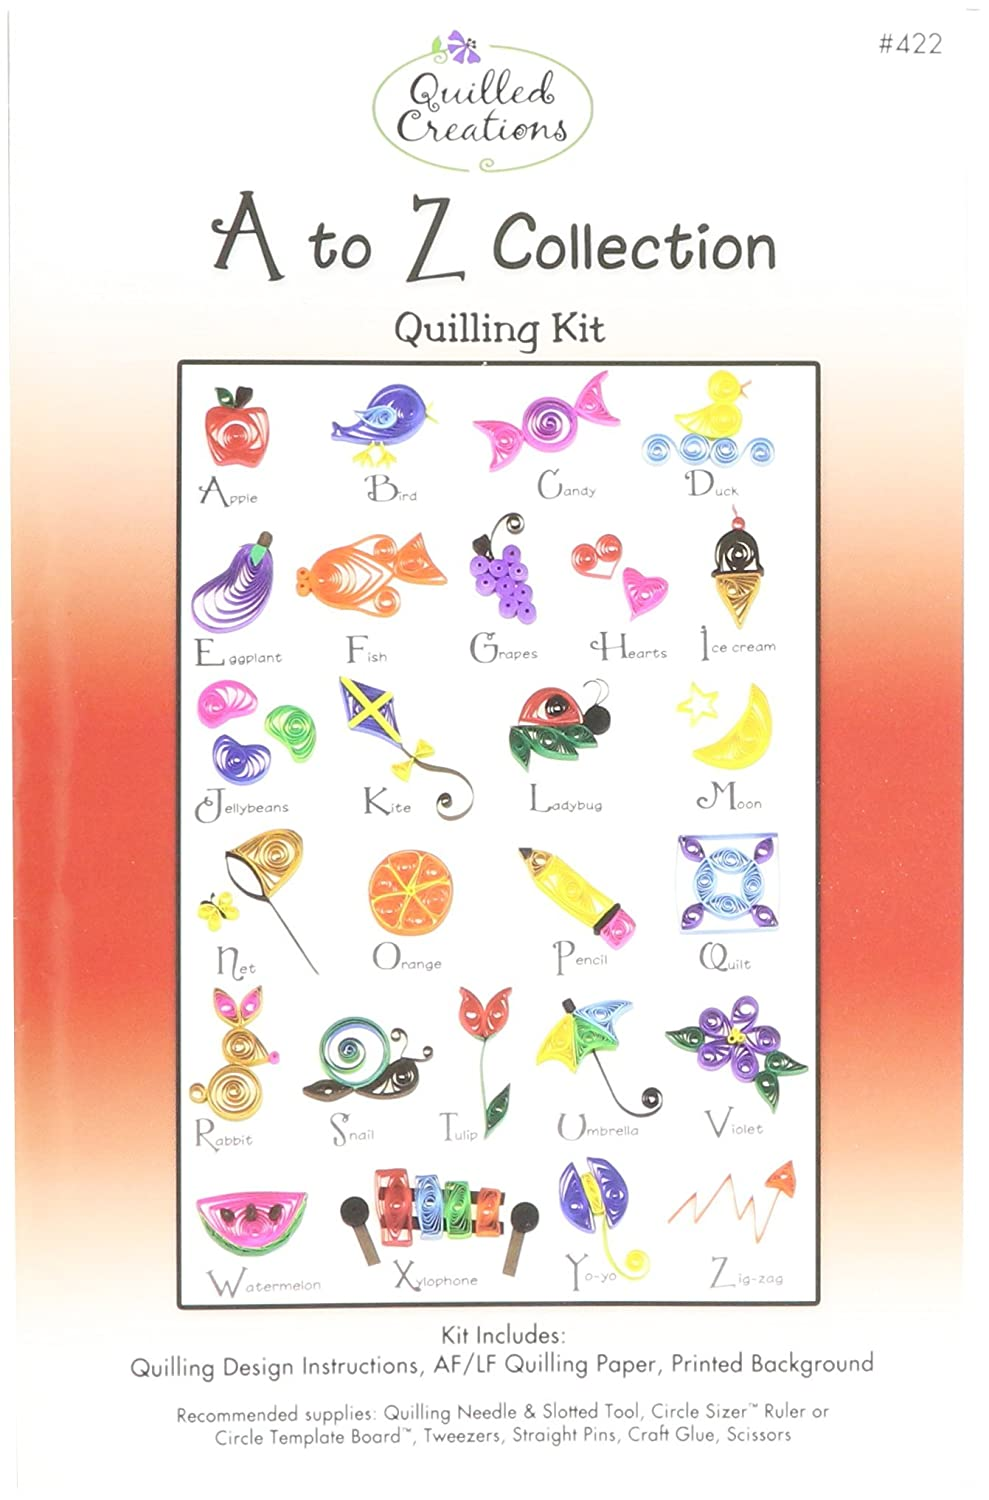 Quilled Creations Q422 A to Z Collection Quilling Kit Notions - In Network